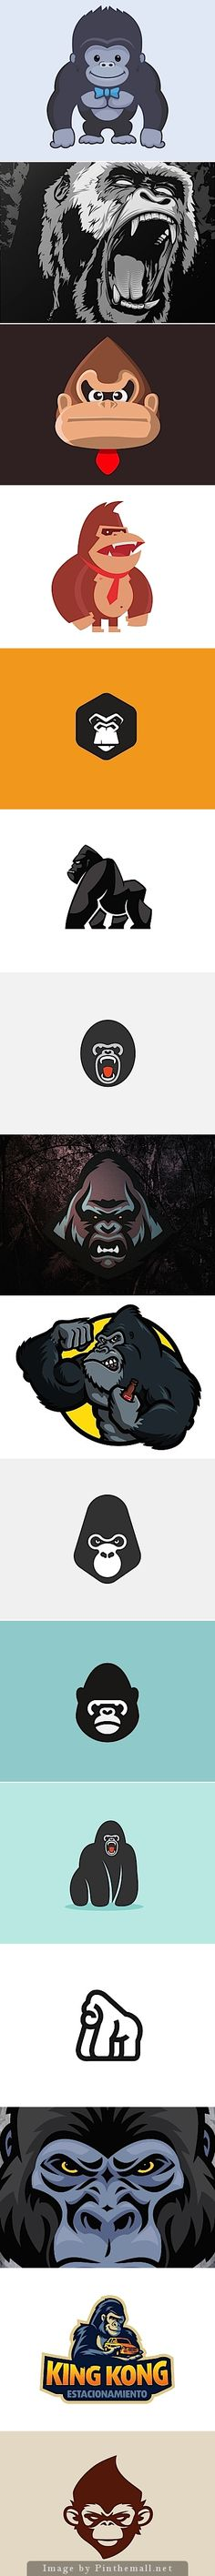 Gorilla illustration collection to show the various styles of vector illustration possible. Helpful for research especially for logo work.